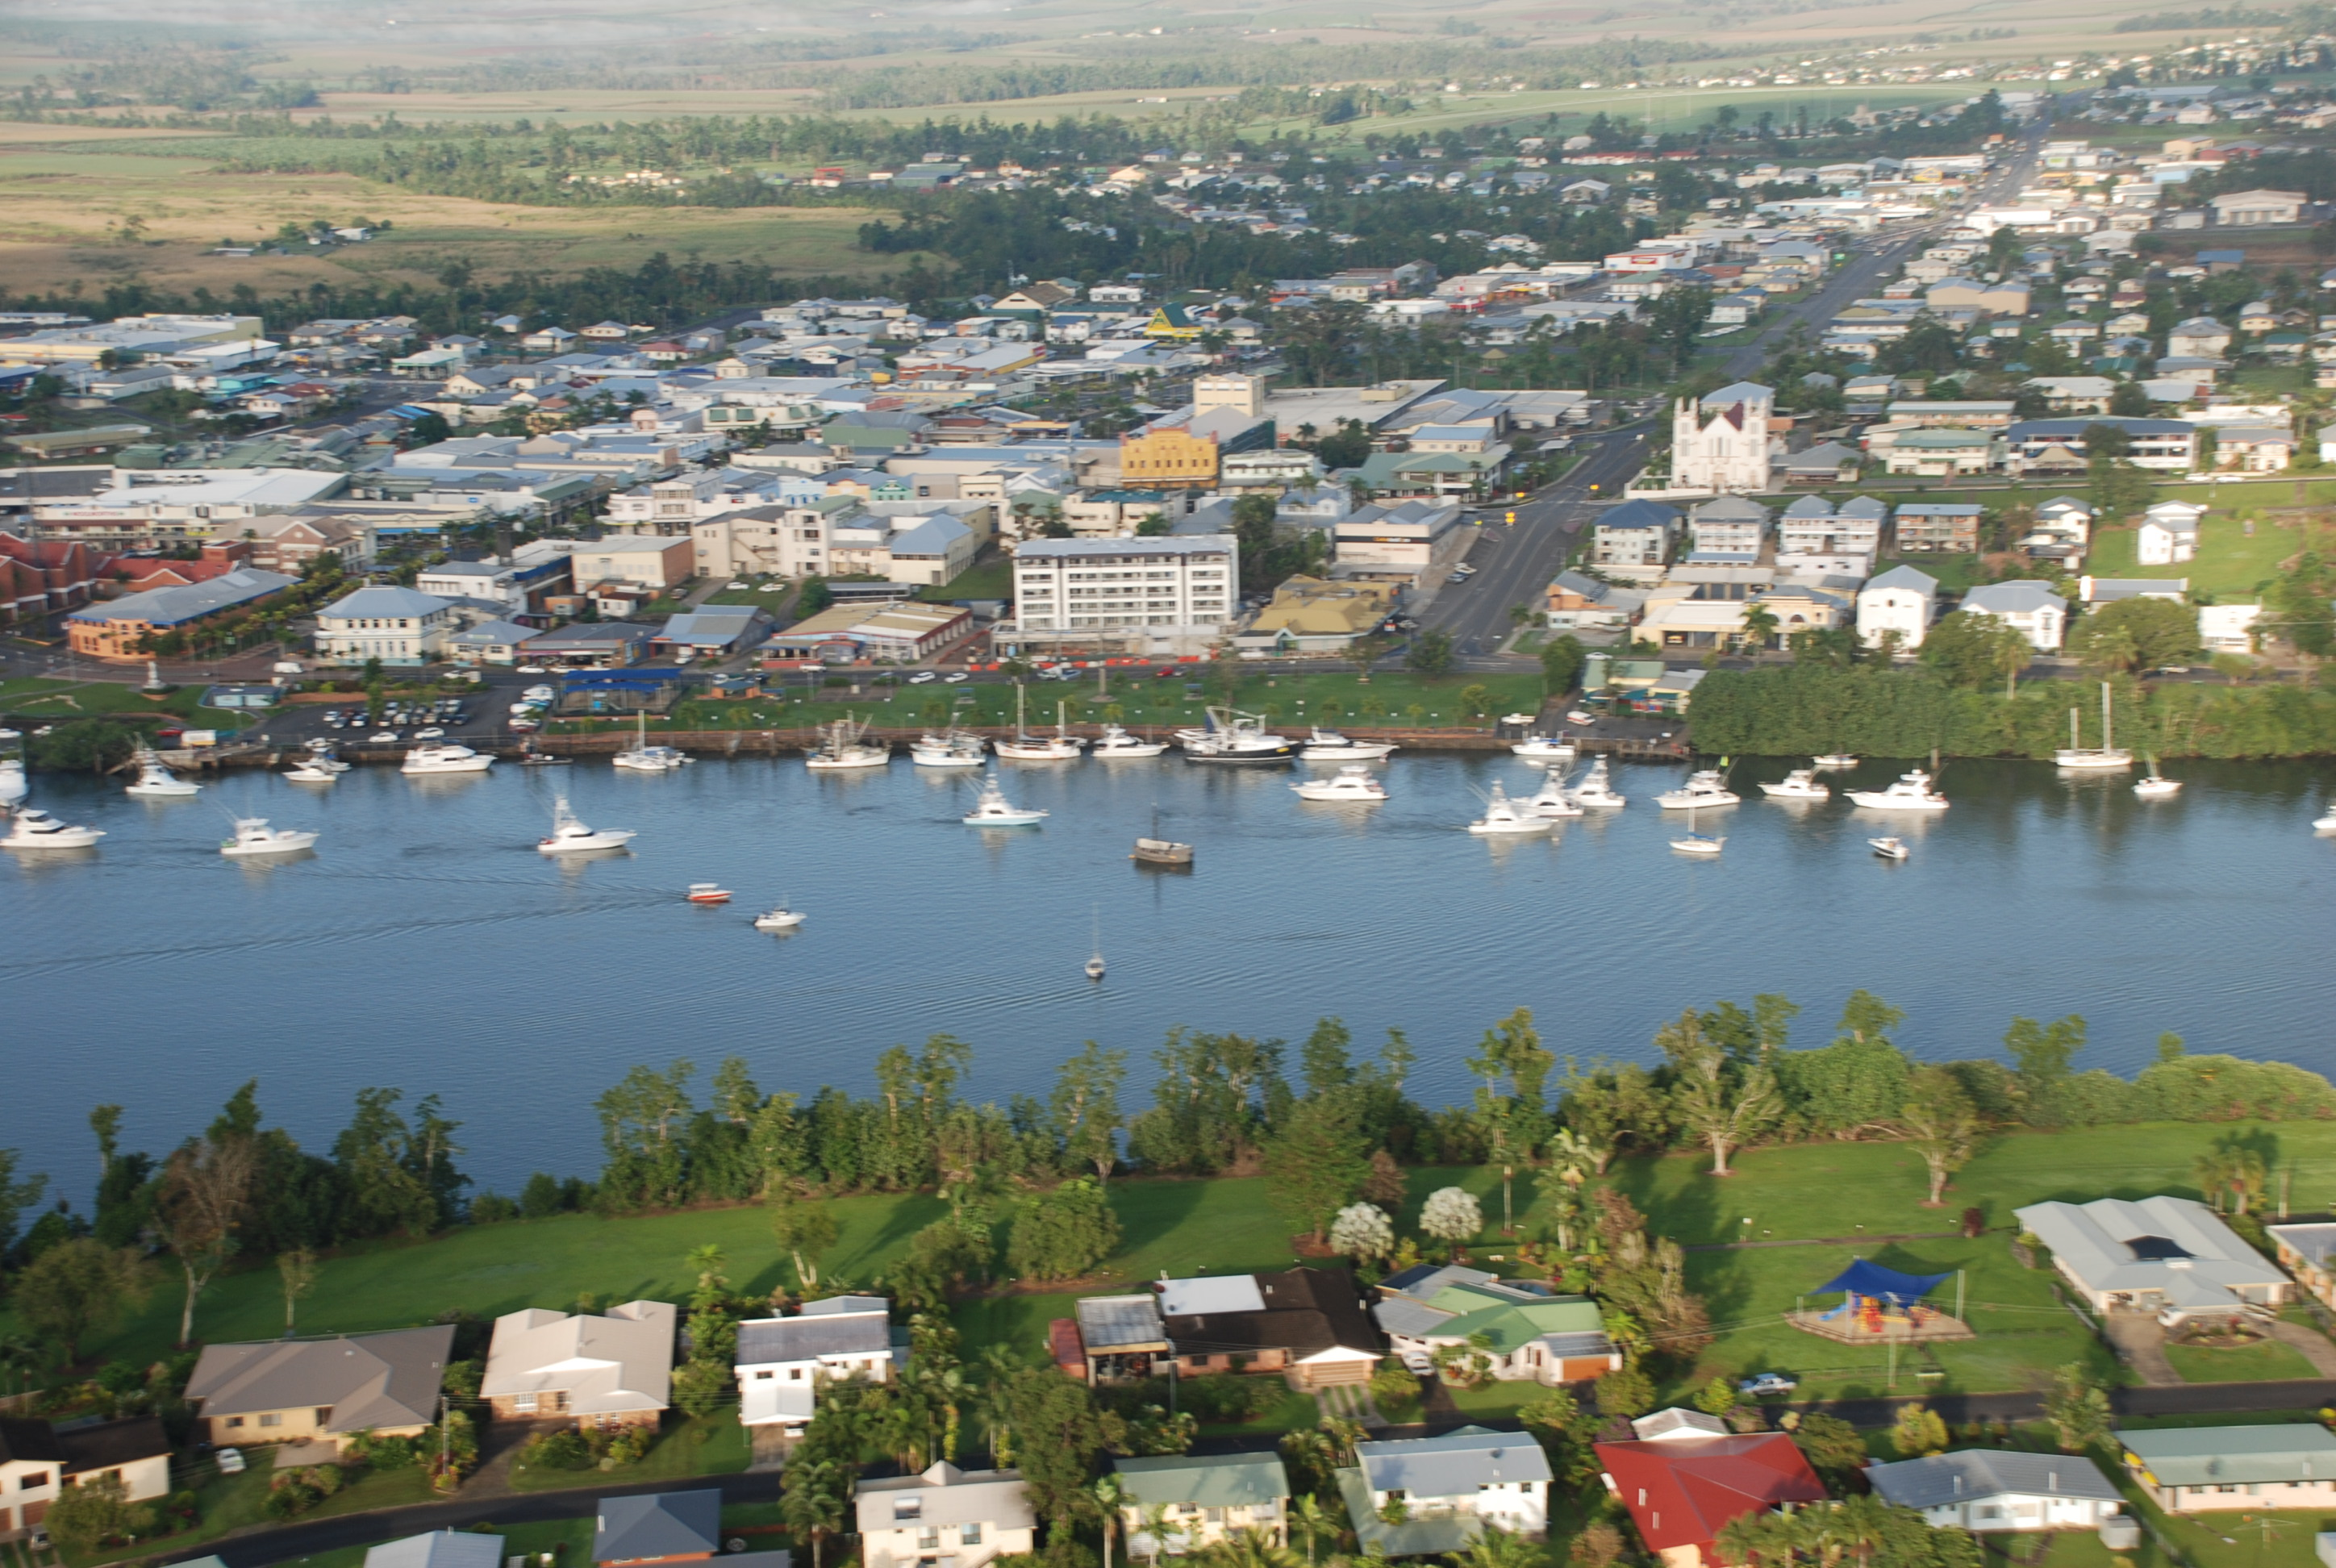 Innisfail Australia  City pictures : Innisfail North Queensland .. Location for the novel